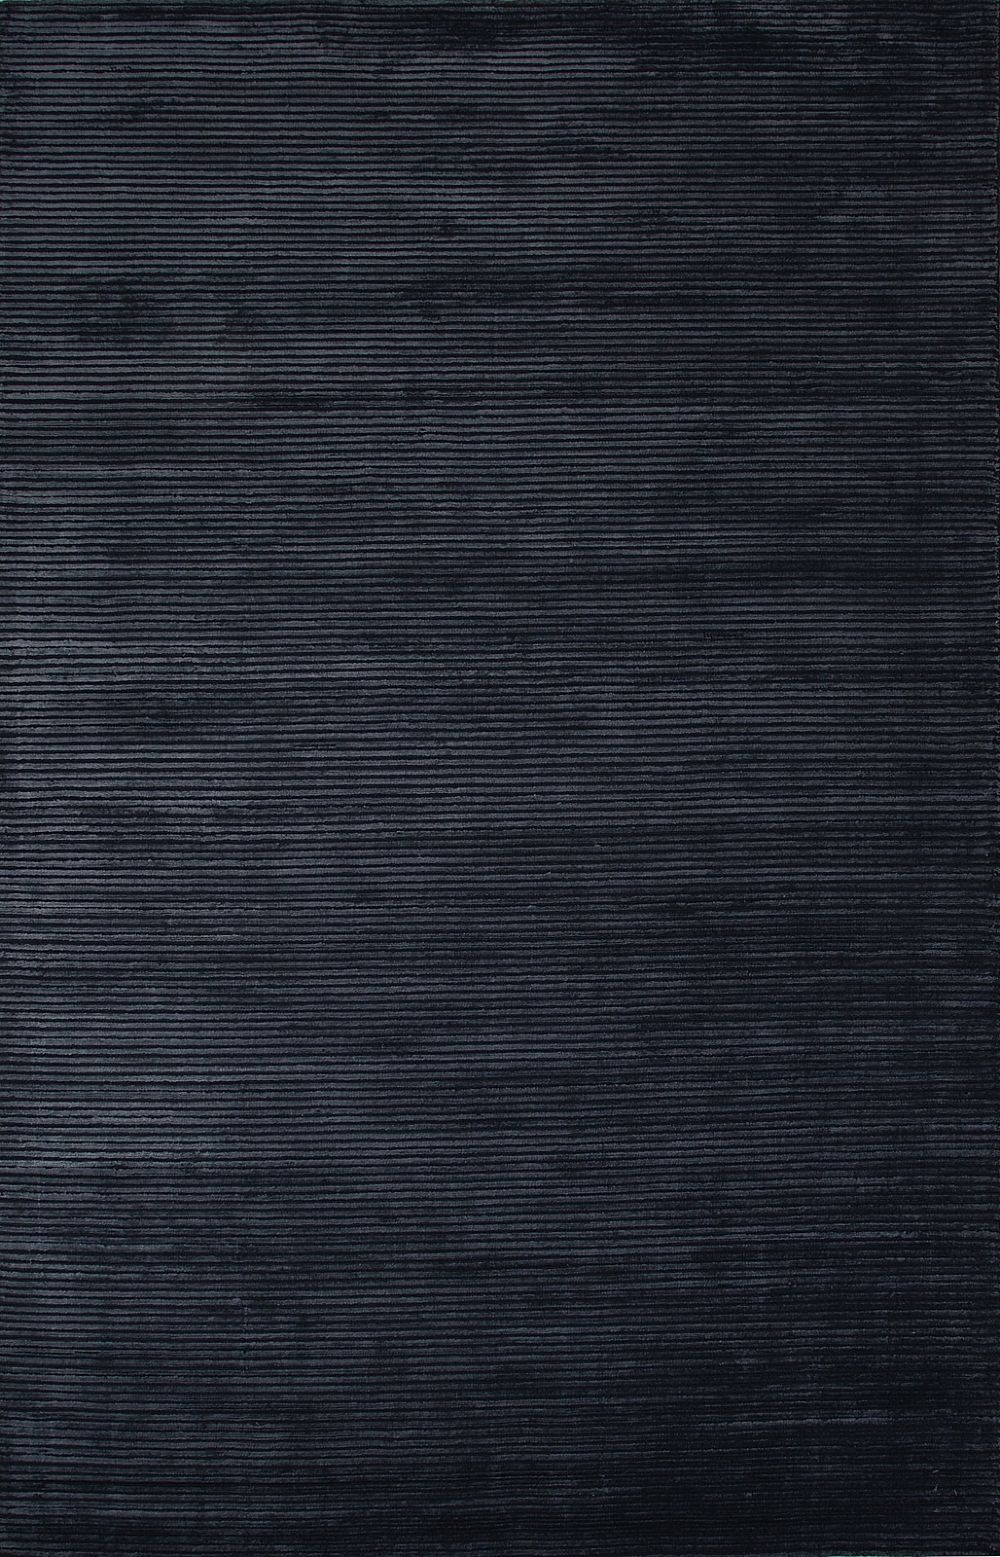 jaipur basis solid/striped area rug collection